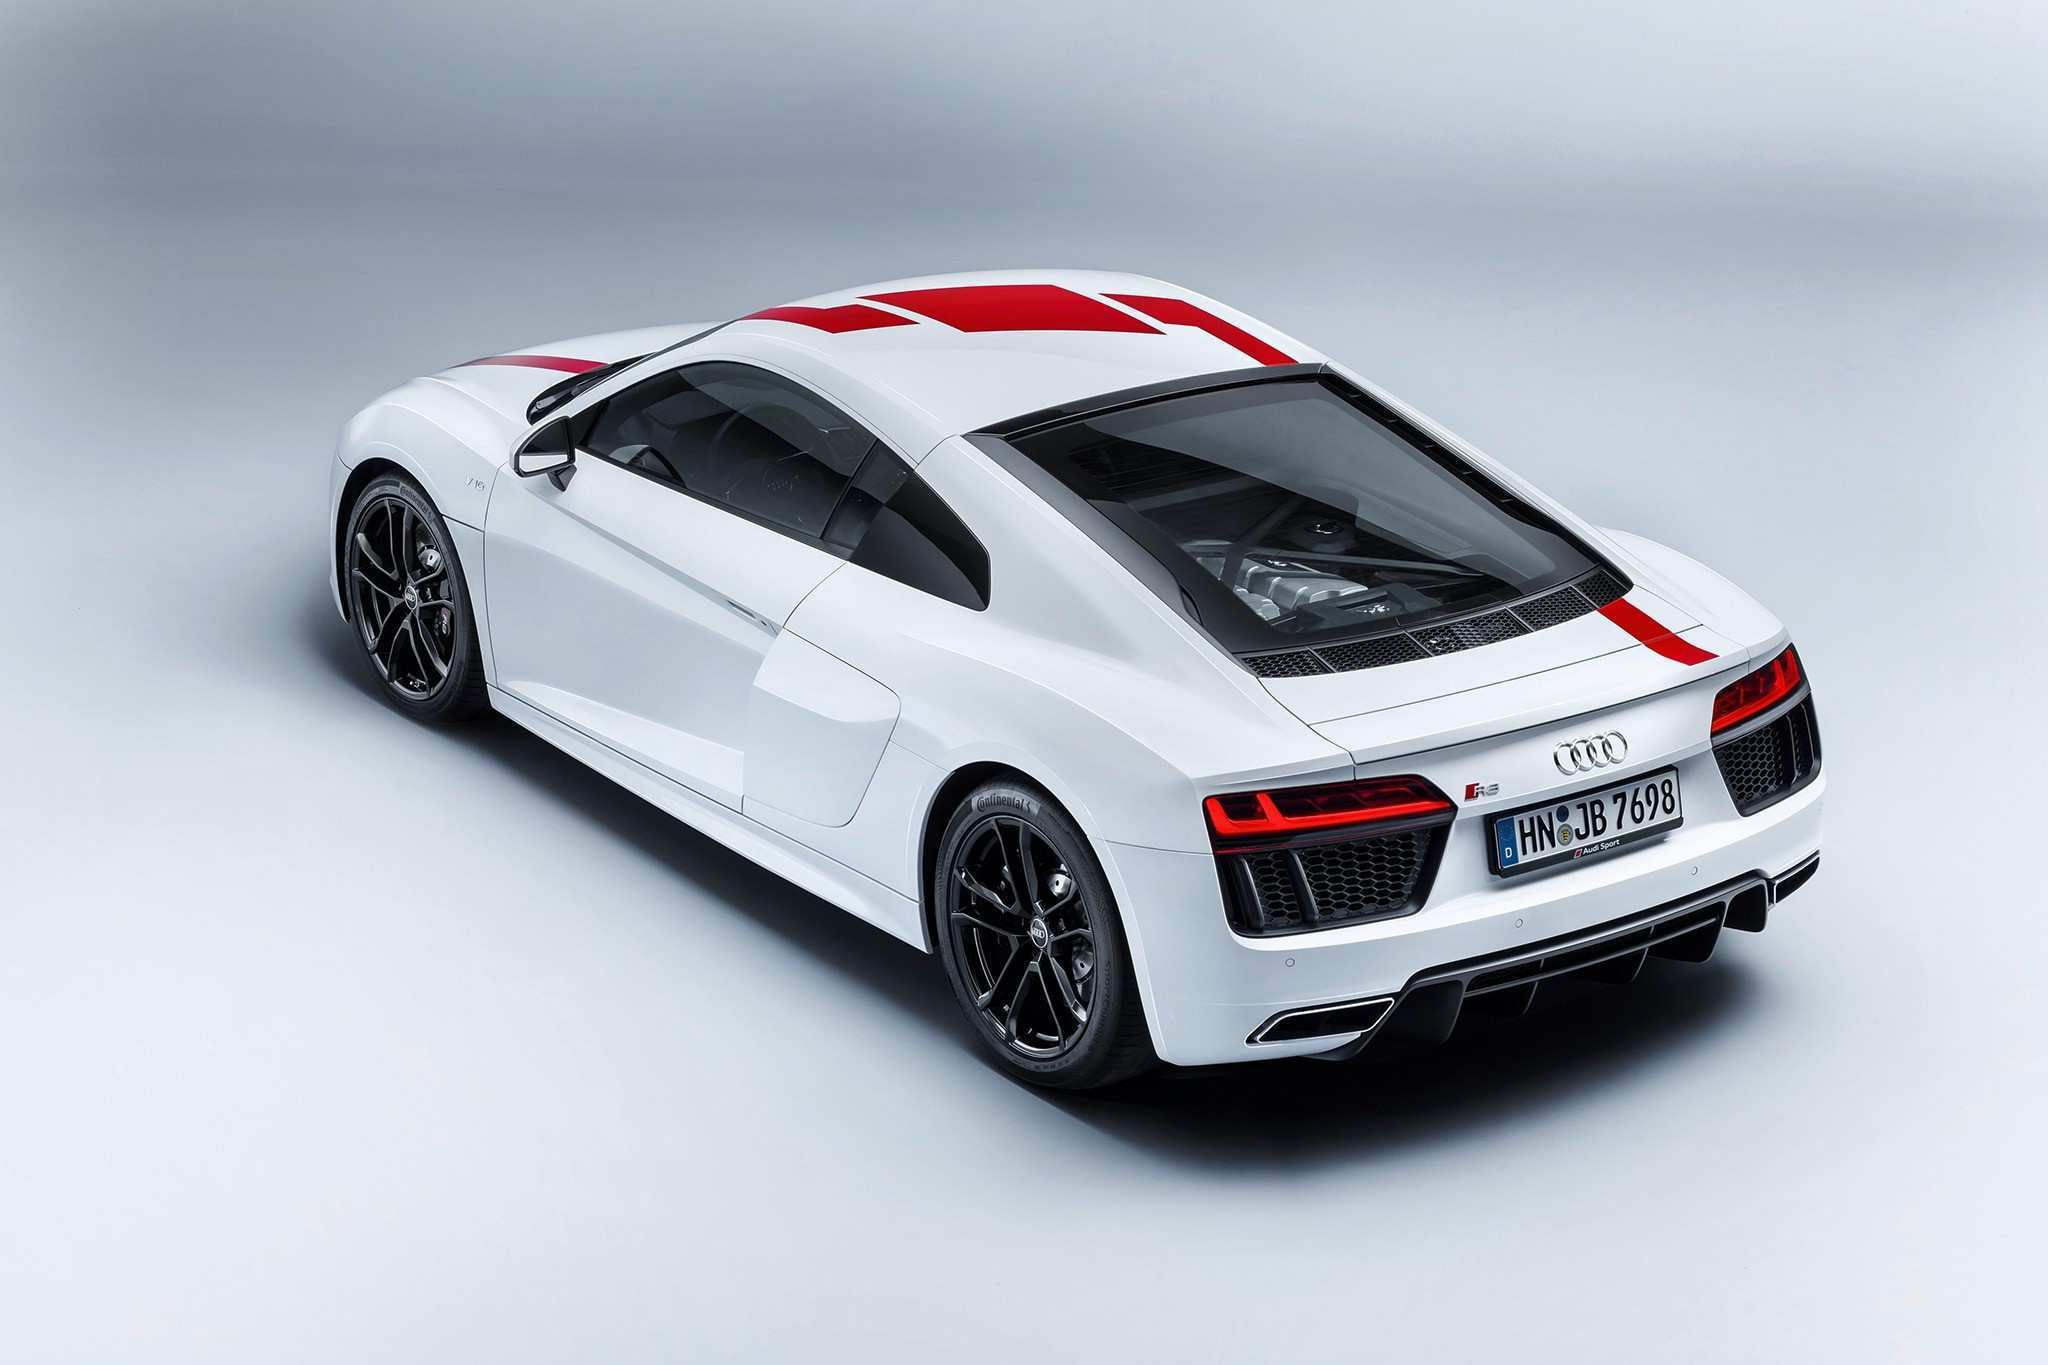 77 The 2019 Audi R8 LMXs New Concept